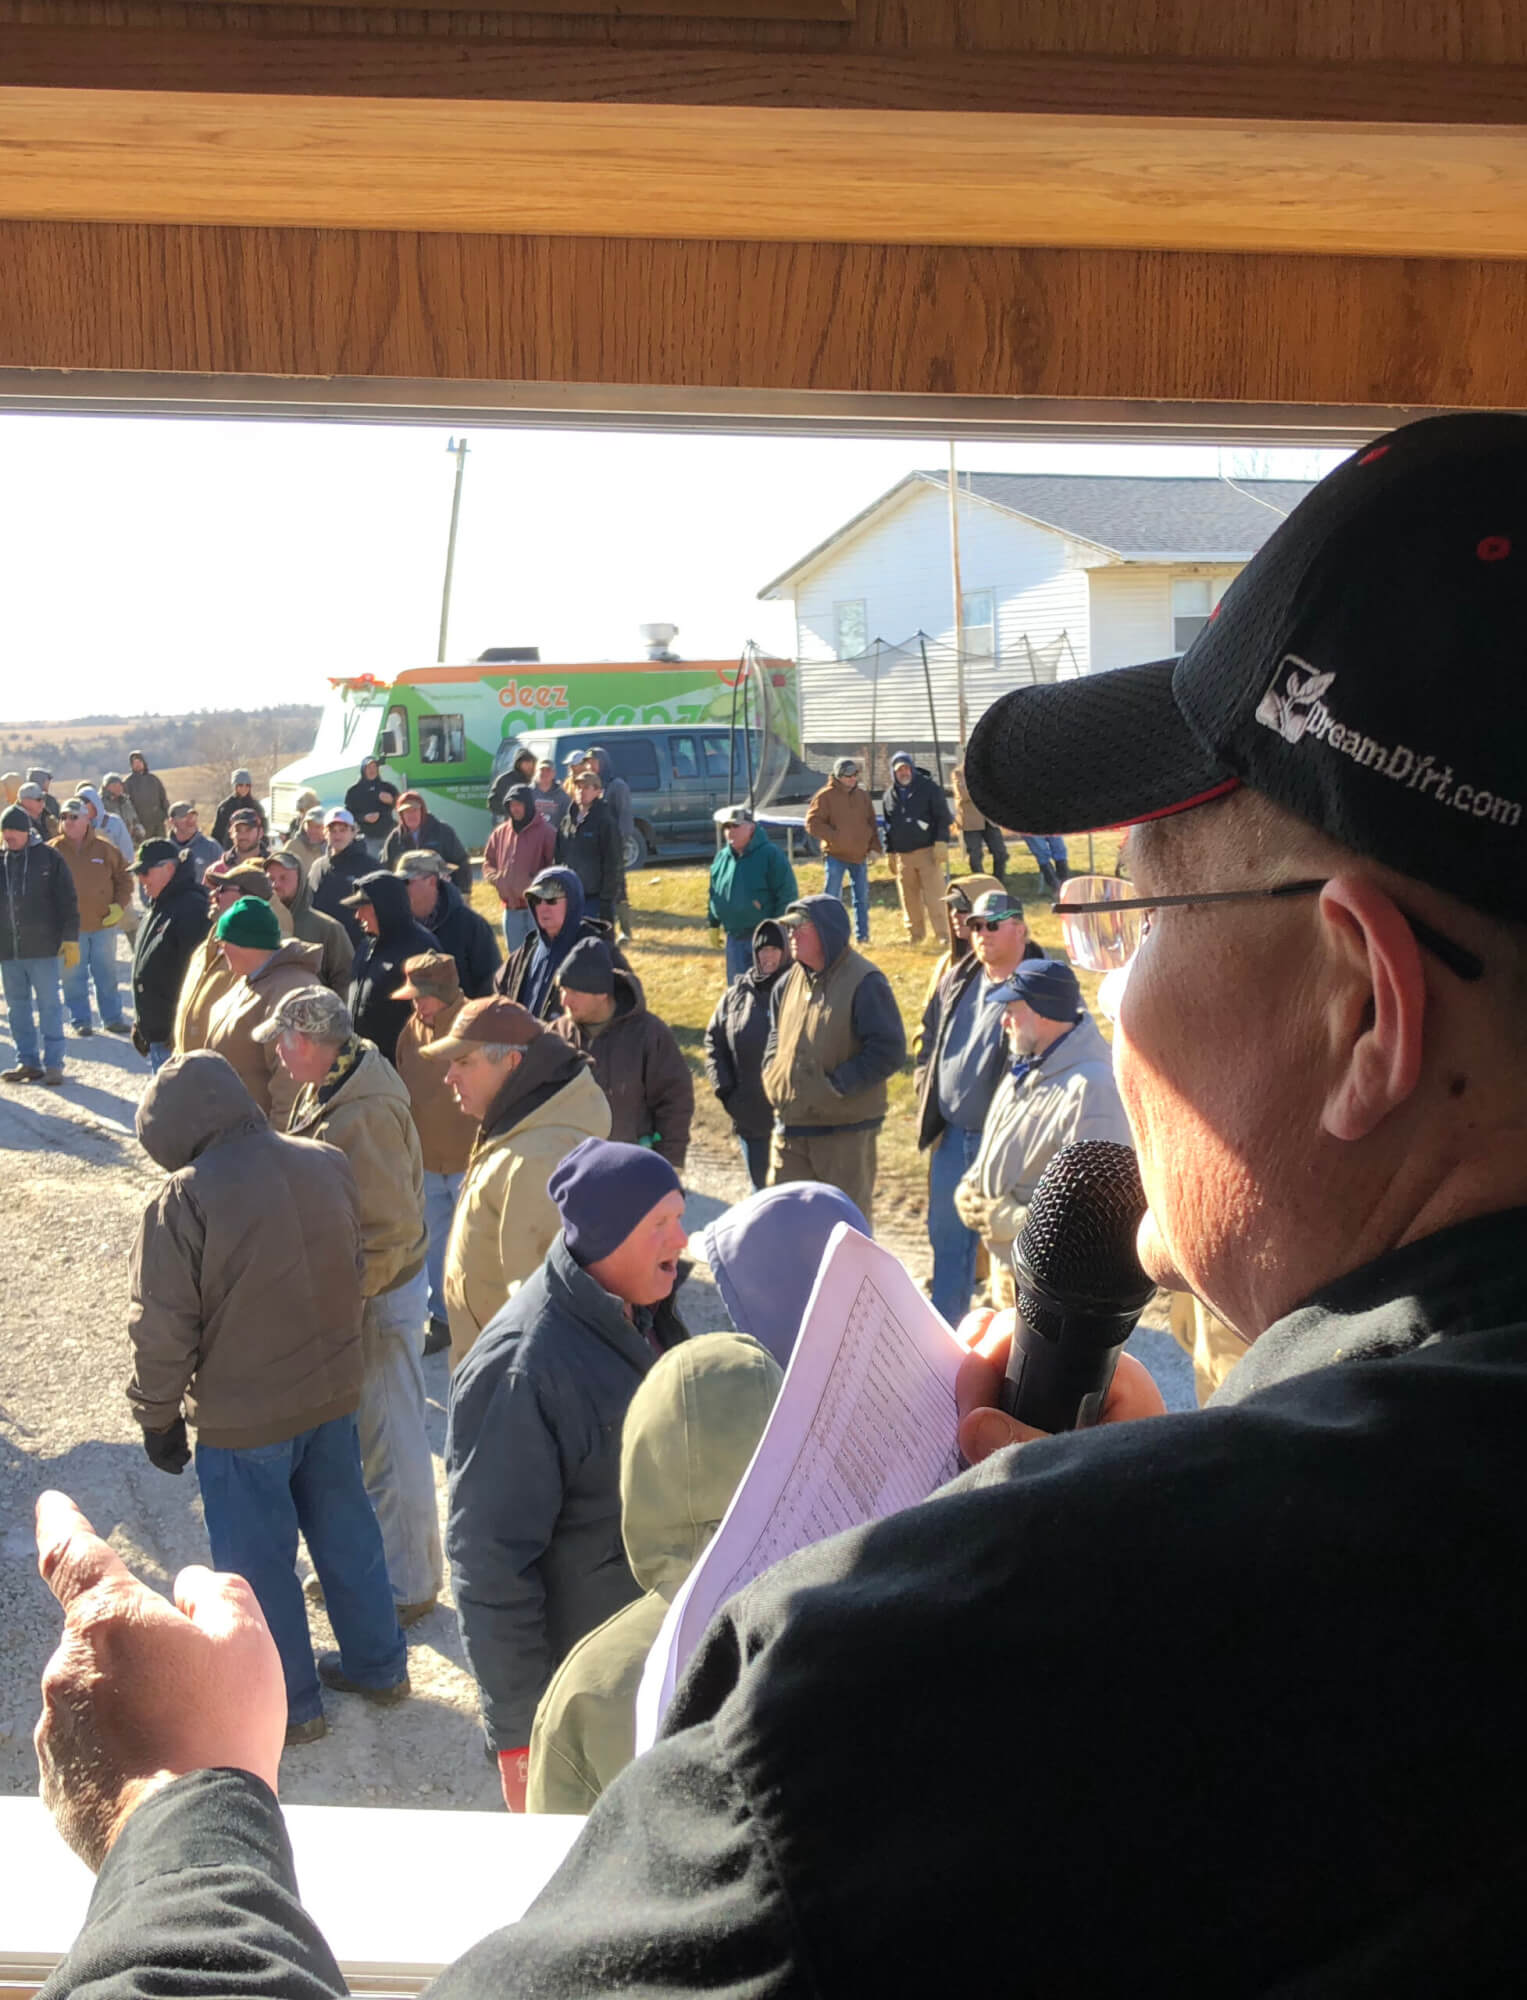 crowd at auction with auctioneer selling